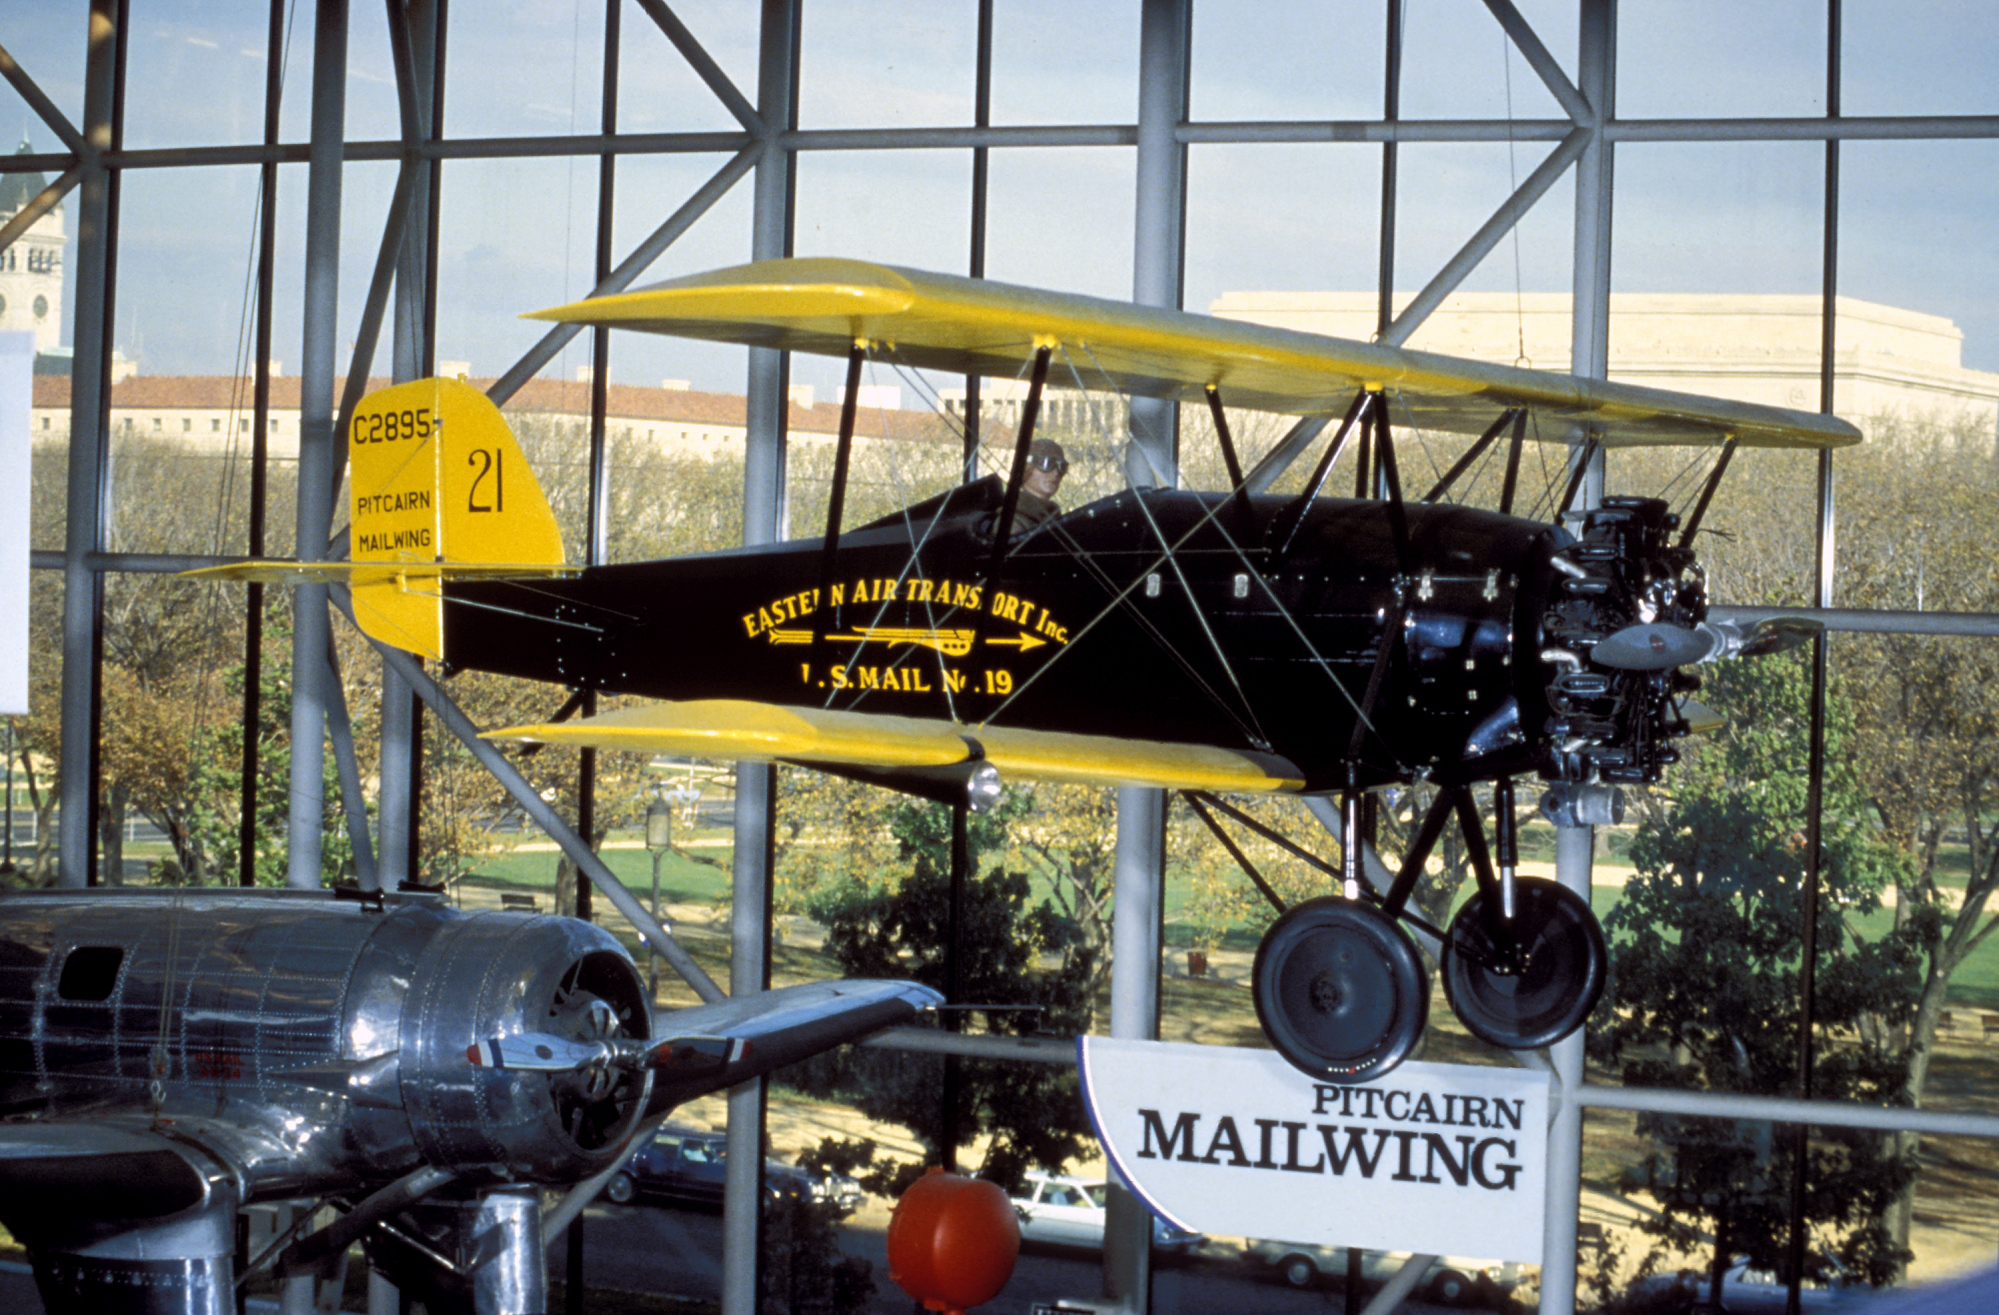 images for Pitcairn PA-5 Mailwing